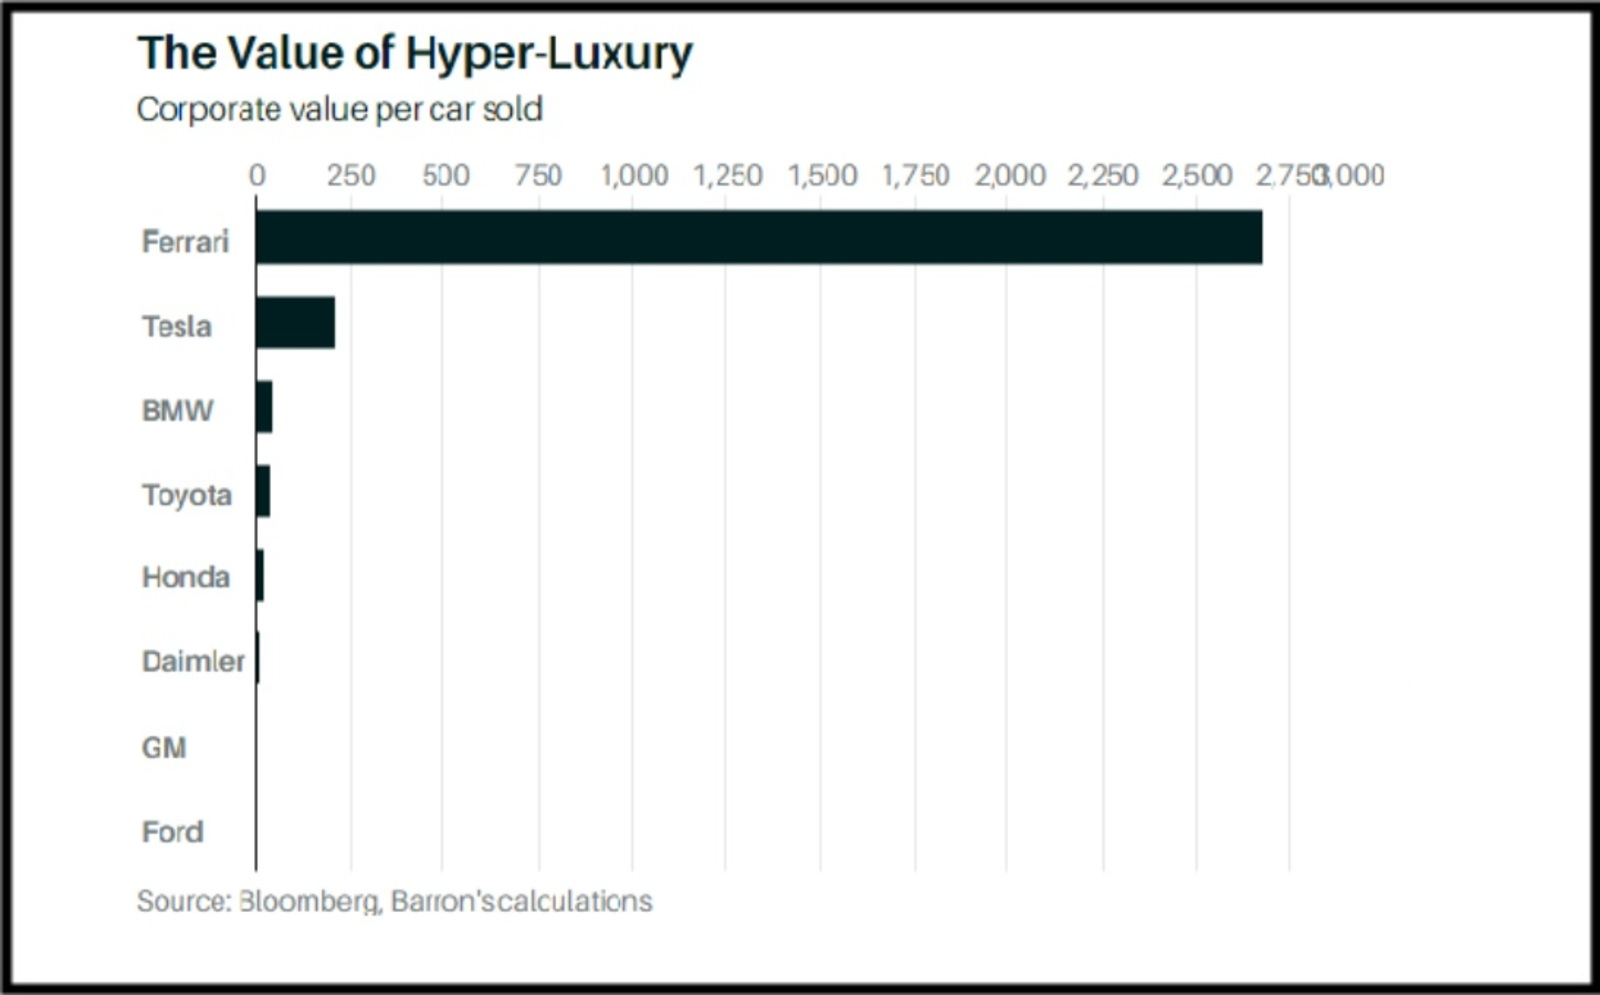 The Value of Hyper Luxury by Corporate Value Per Cars Sold